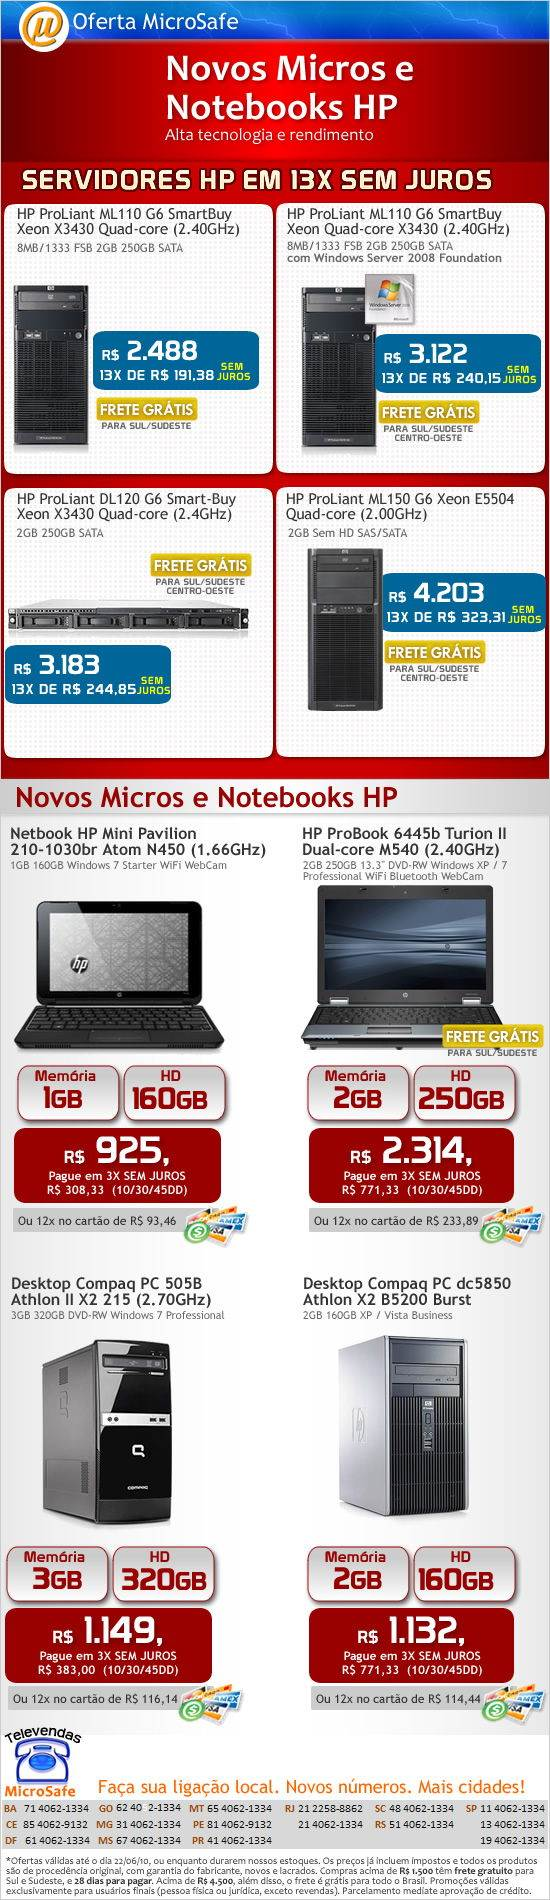 Novos Micros e Notebooks HP!